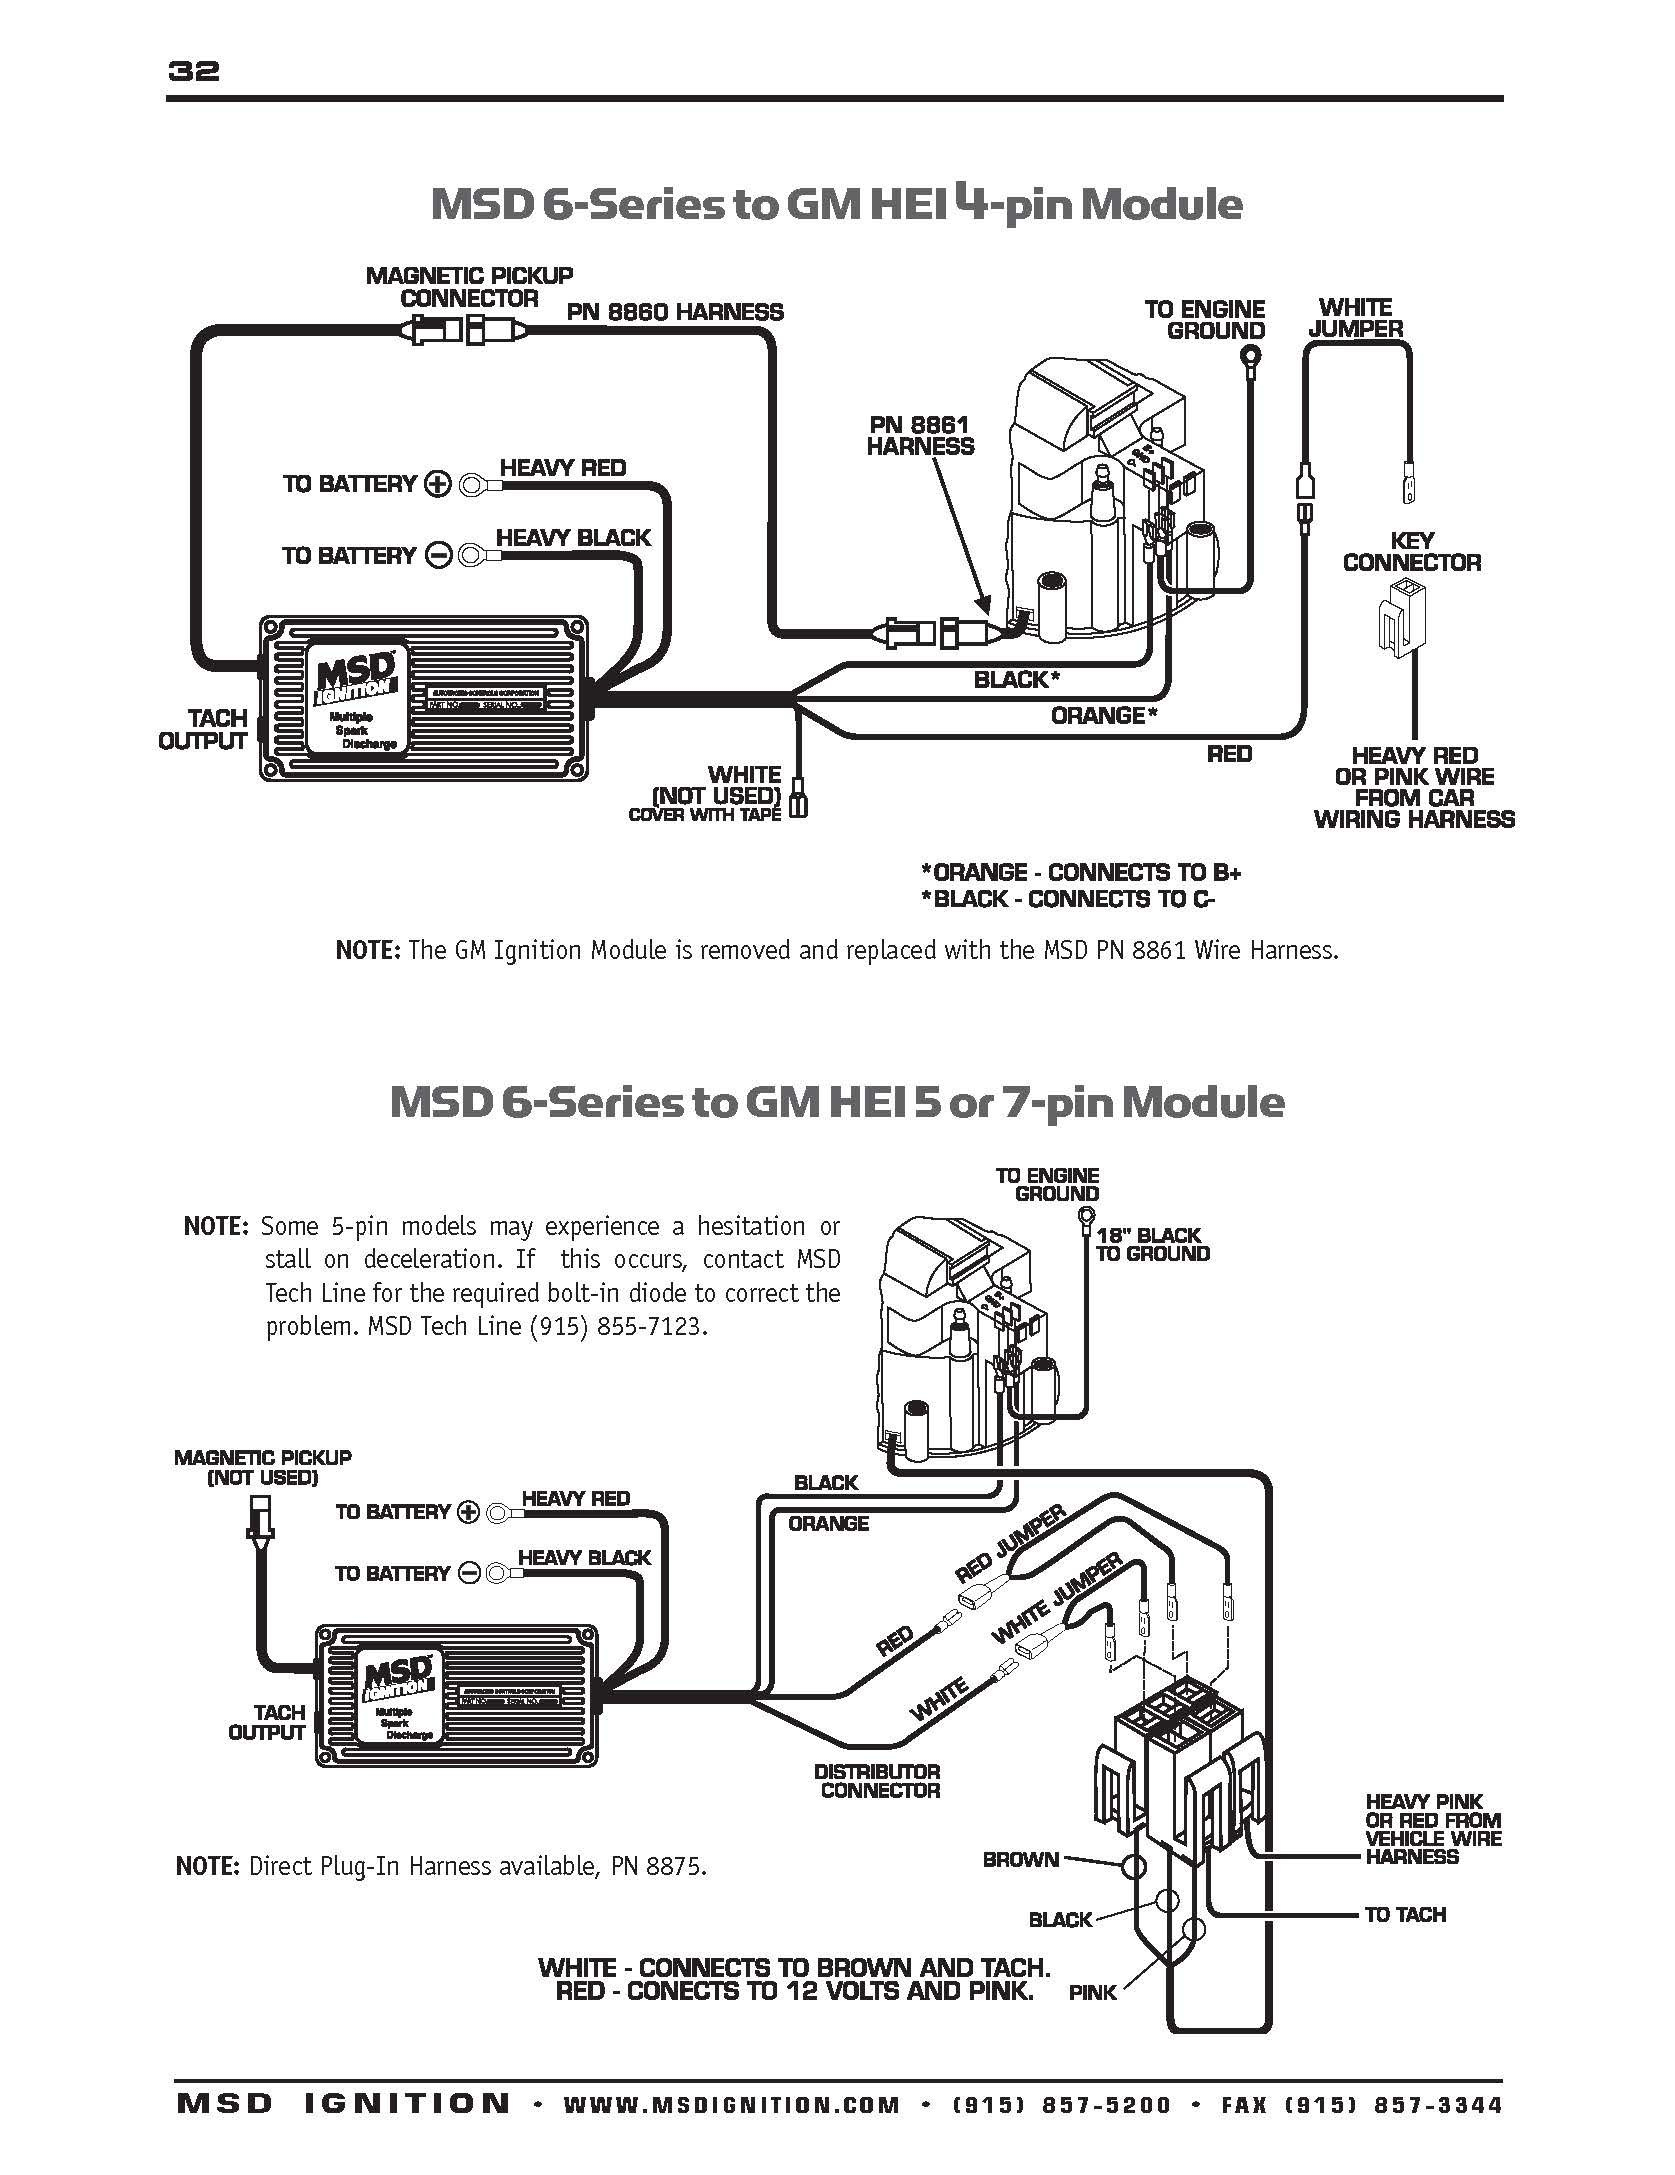 Msd Ignition Wiring - Wiring Diagrams Hubs - Msd Ignition Wiring Diagram